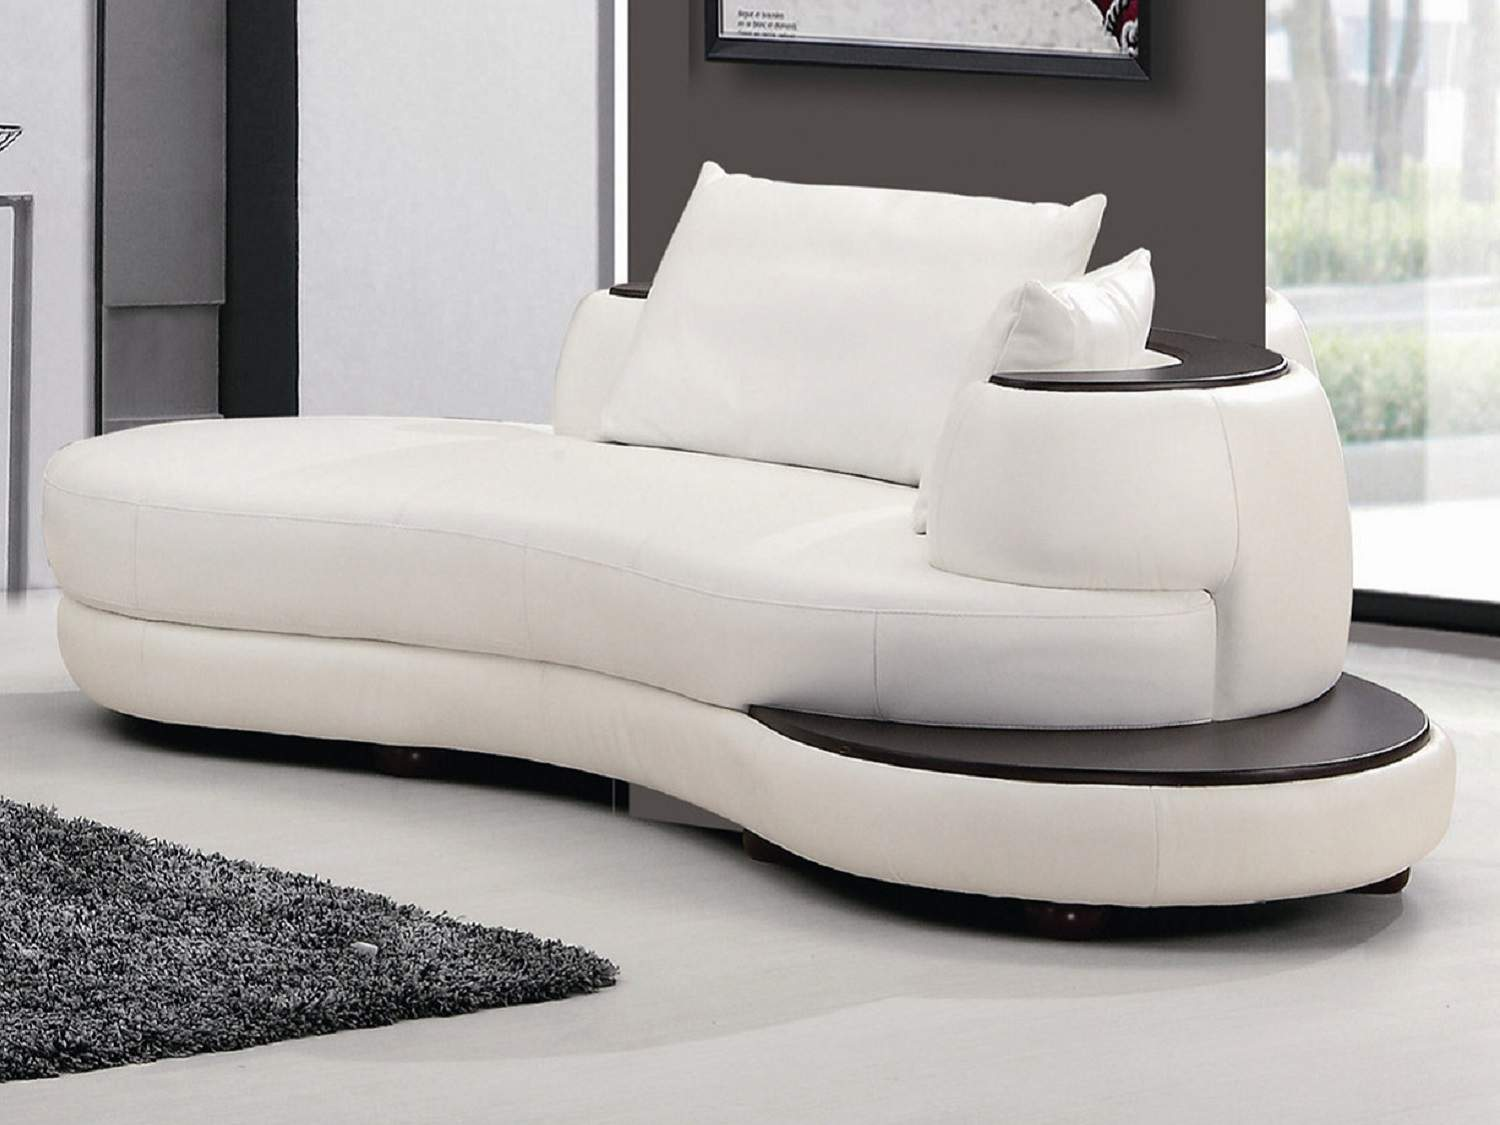 FLOWELL Chaise